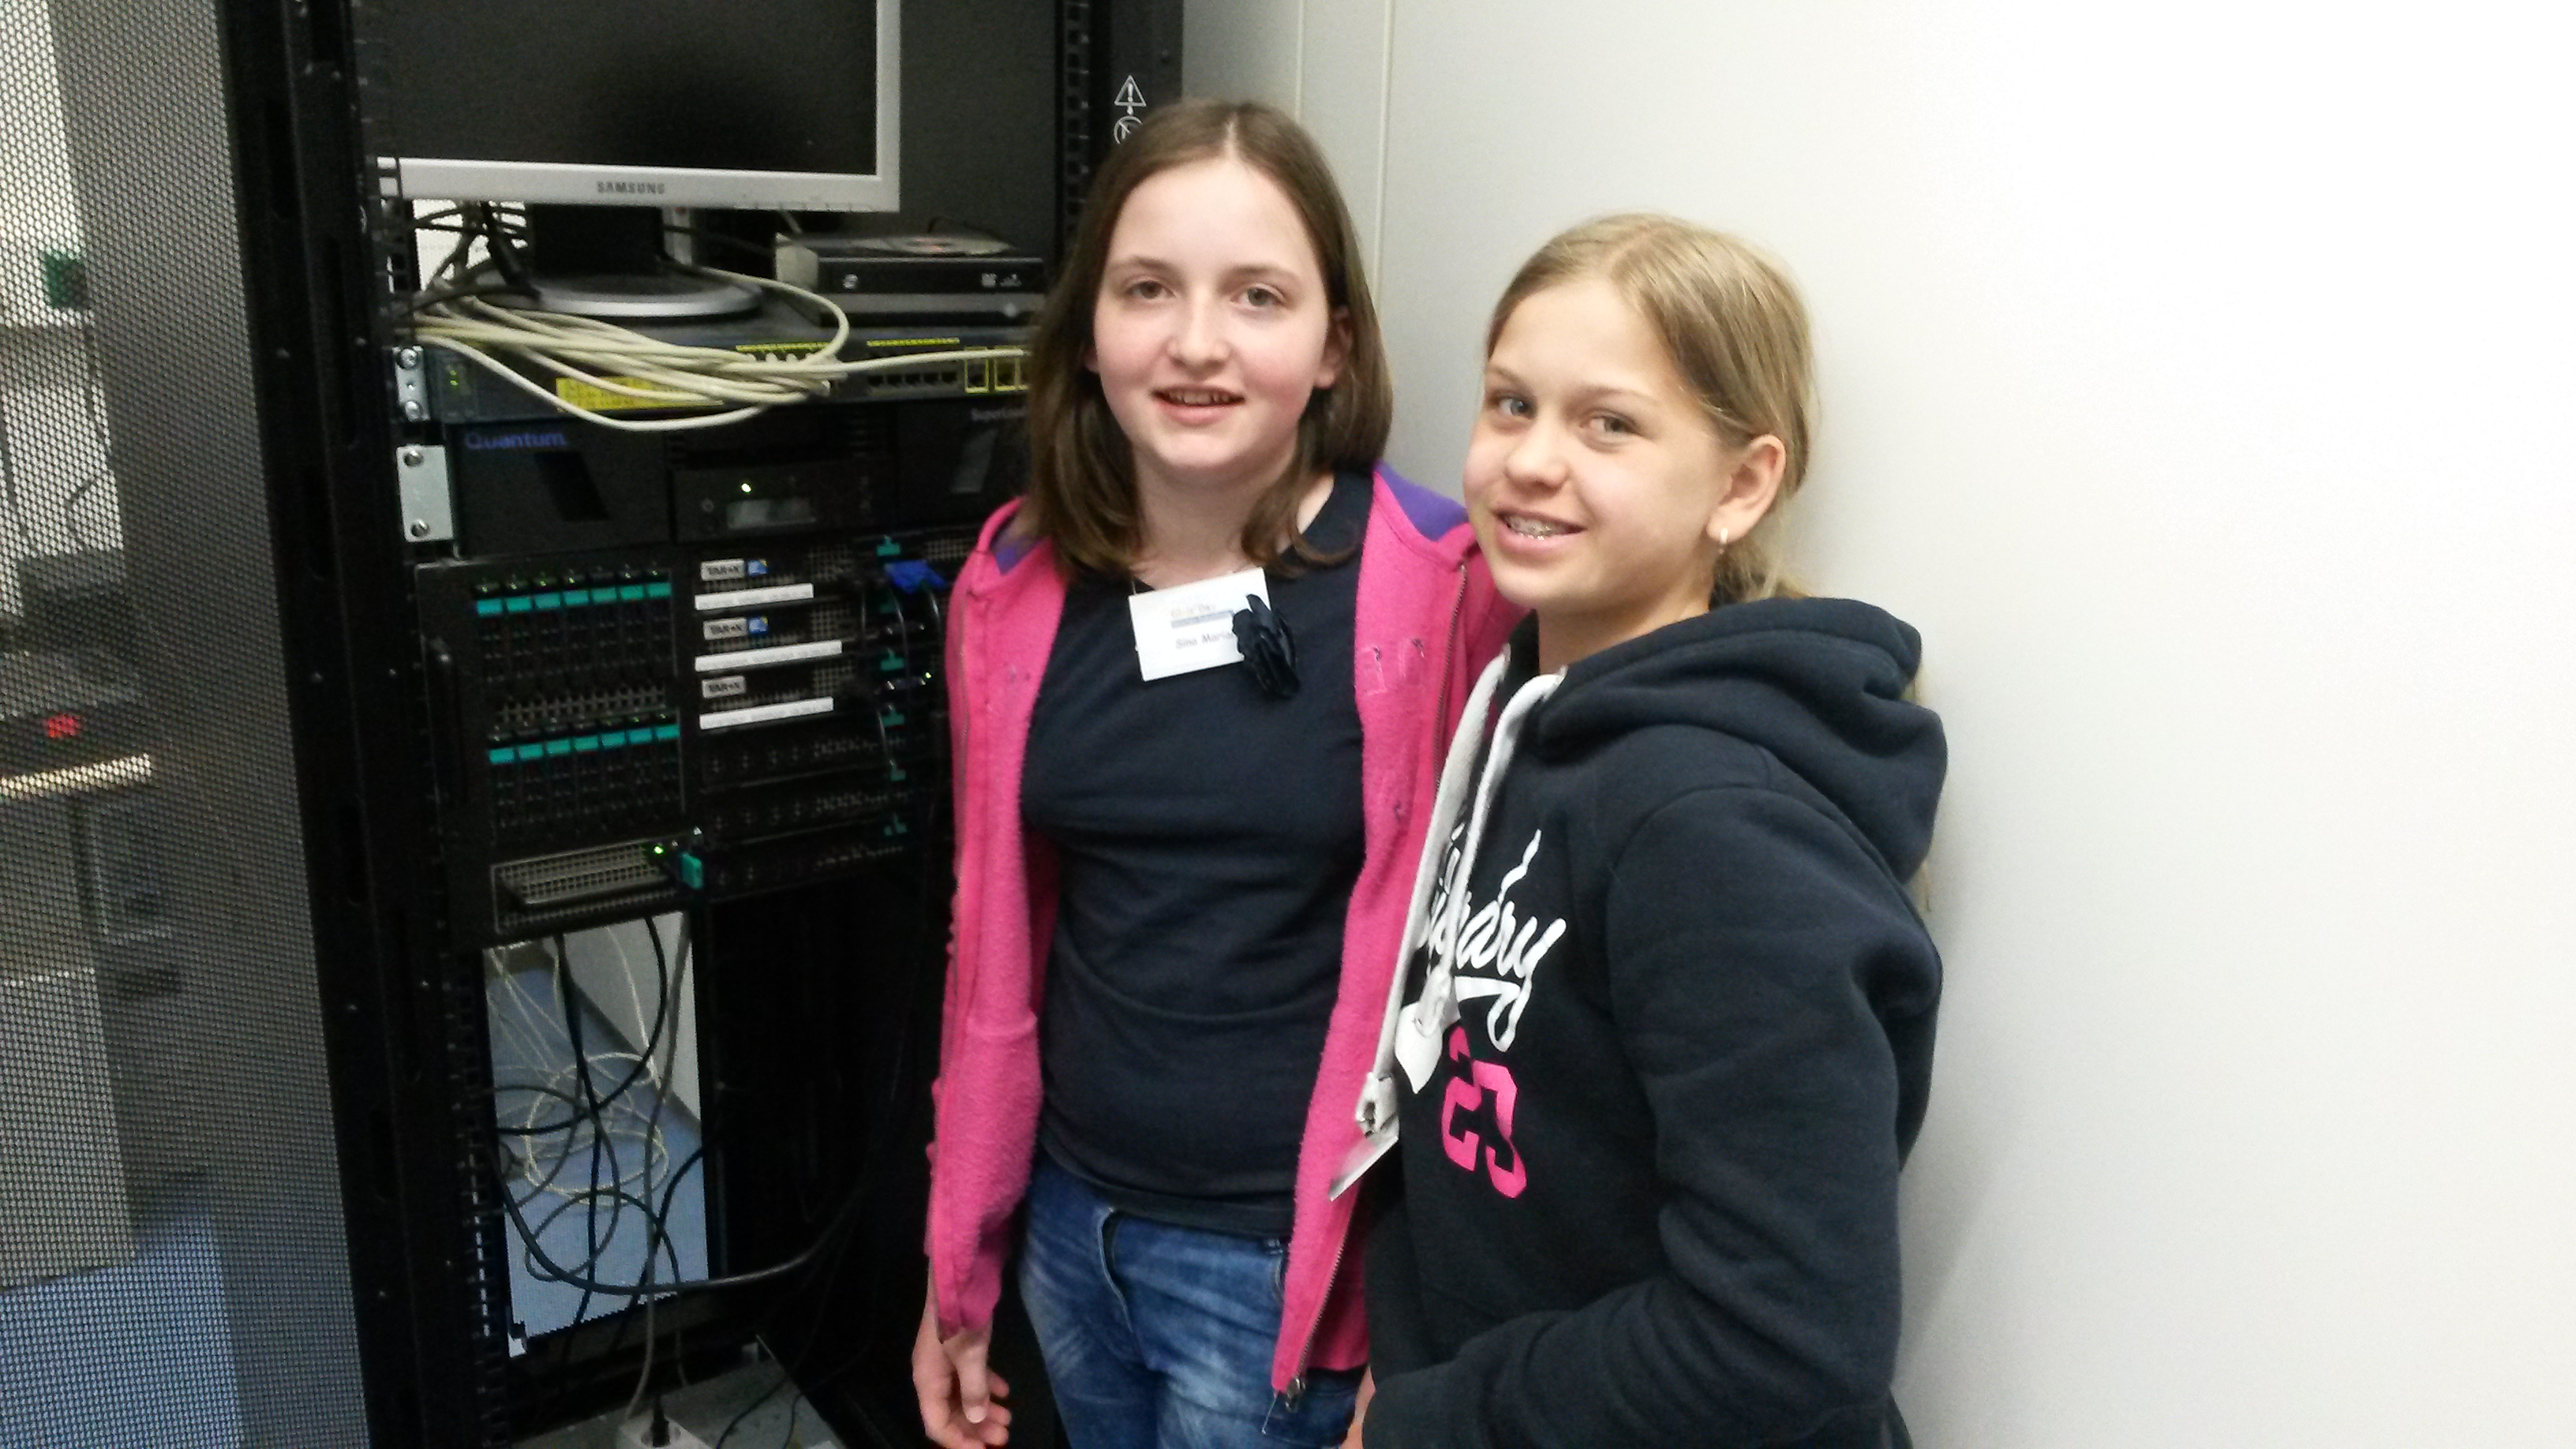 Girls'Day 2015 - in der Elektronikwerkstatt (3)